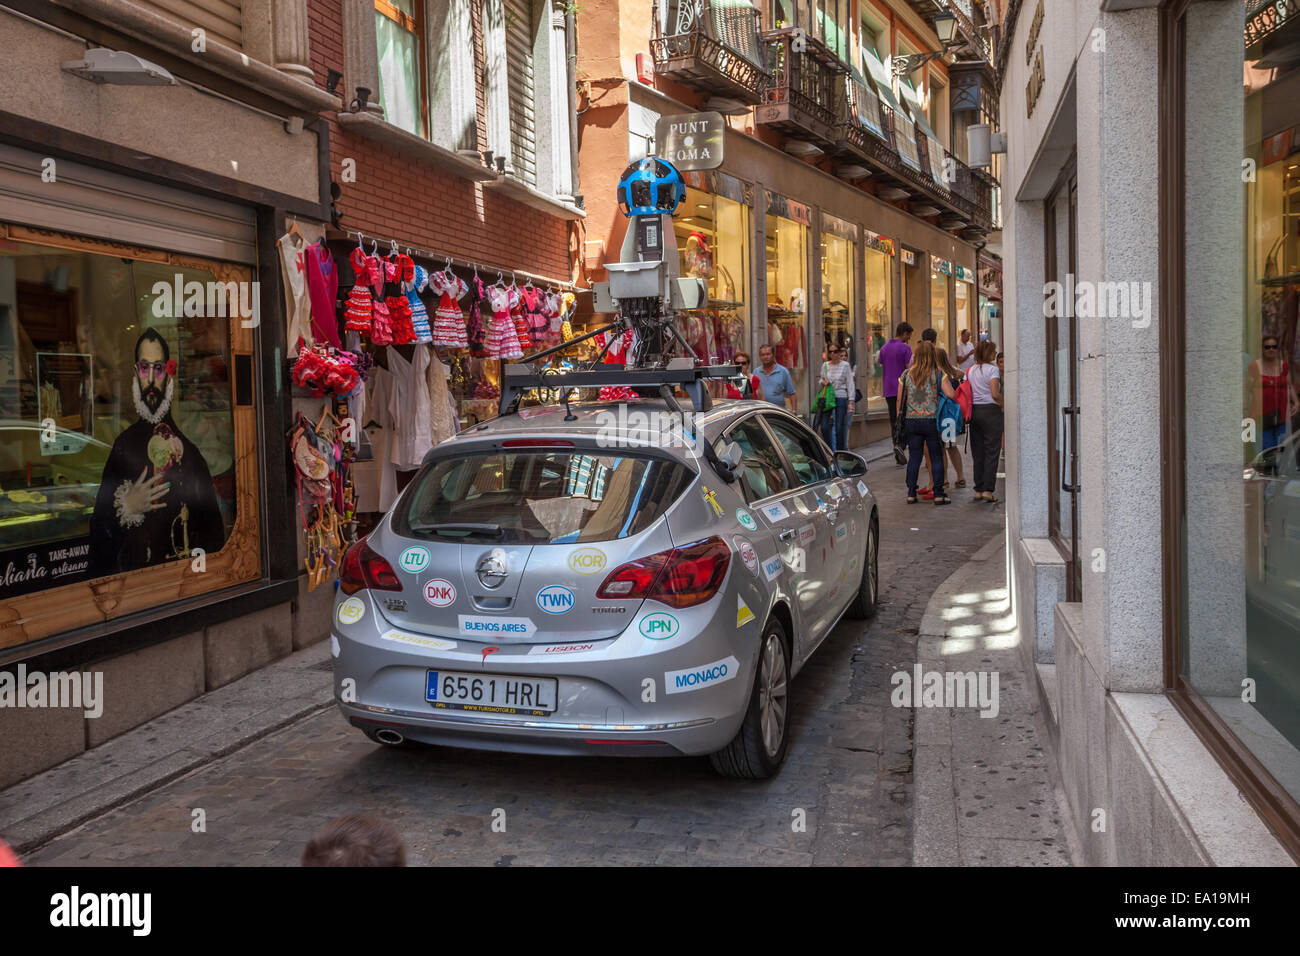 Google street view car in the old town of Toledo, Spain - Stock Image